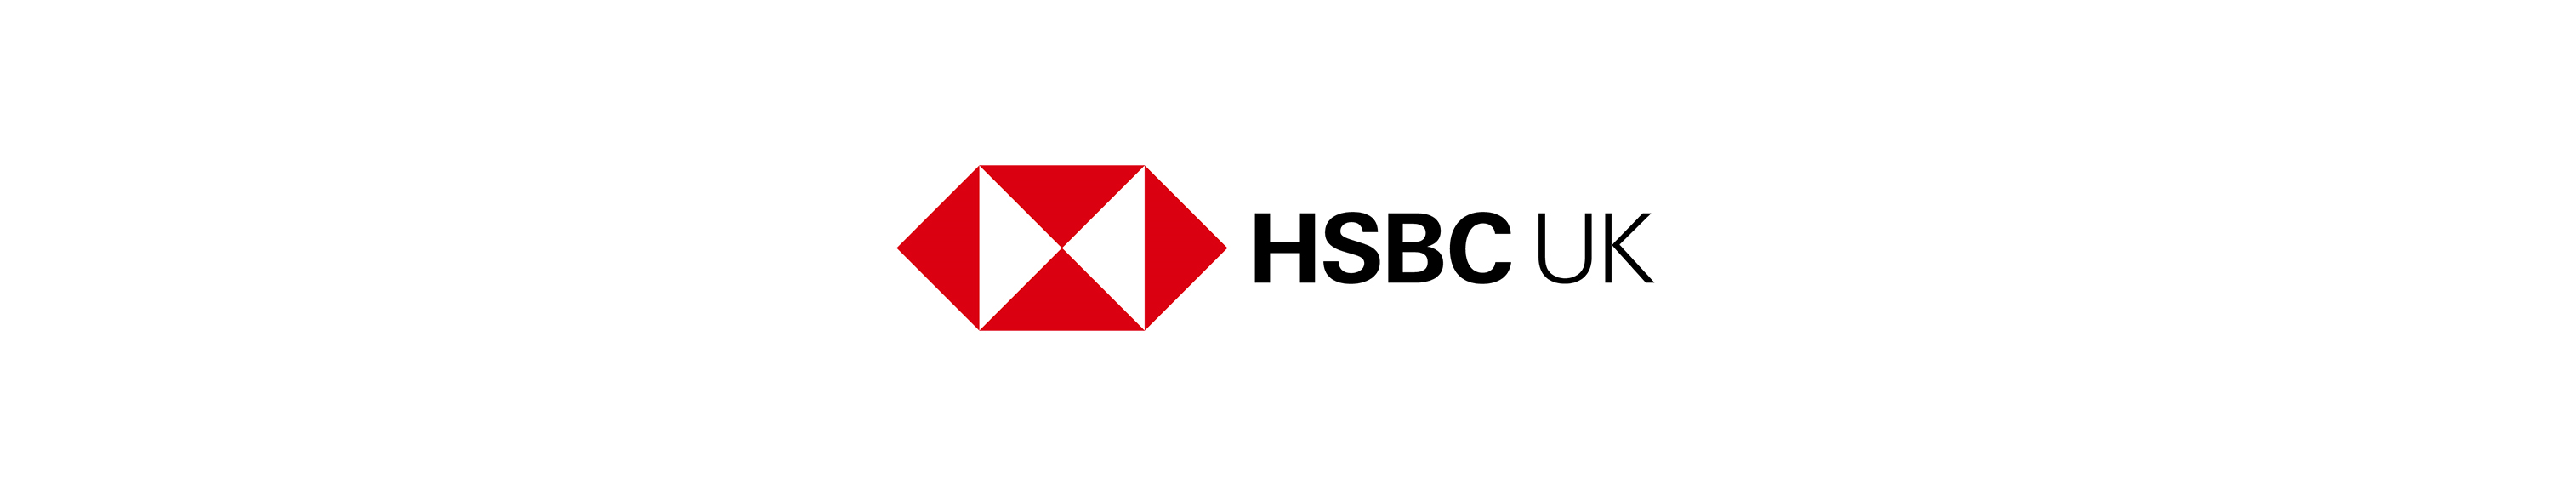 HSBC UK logo